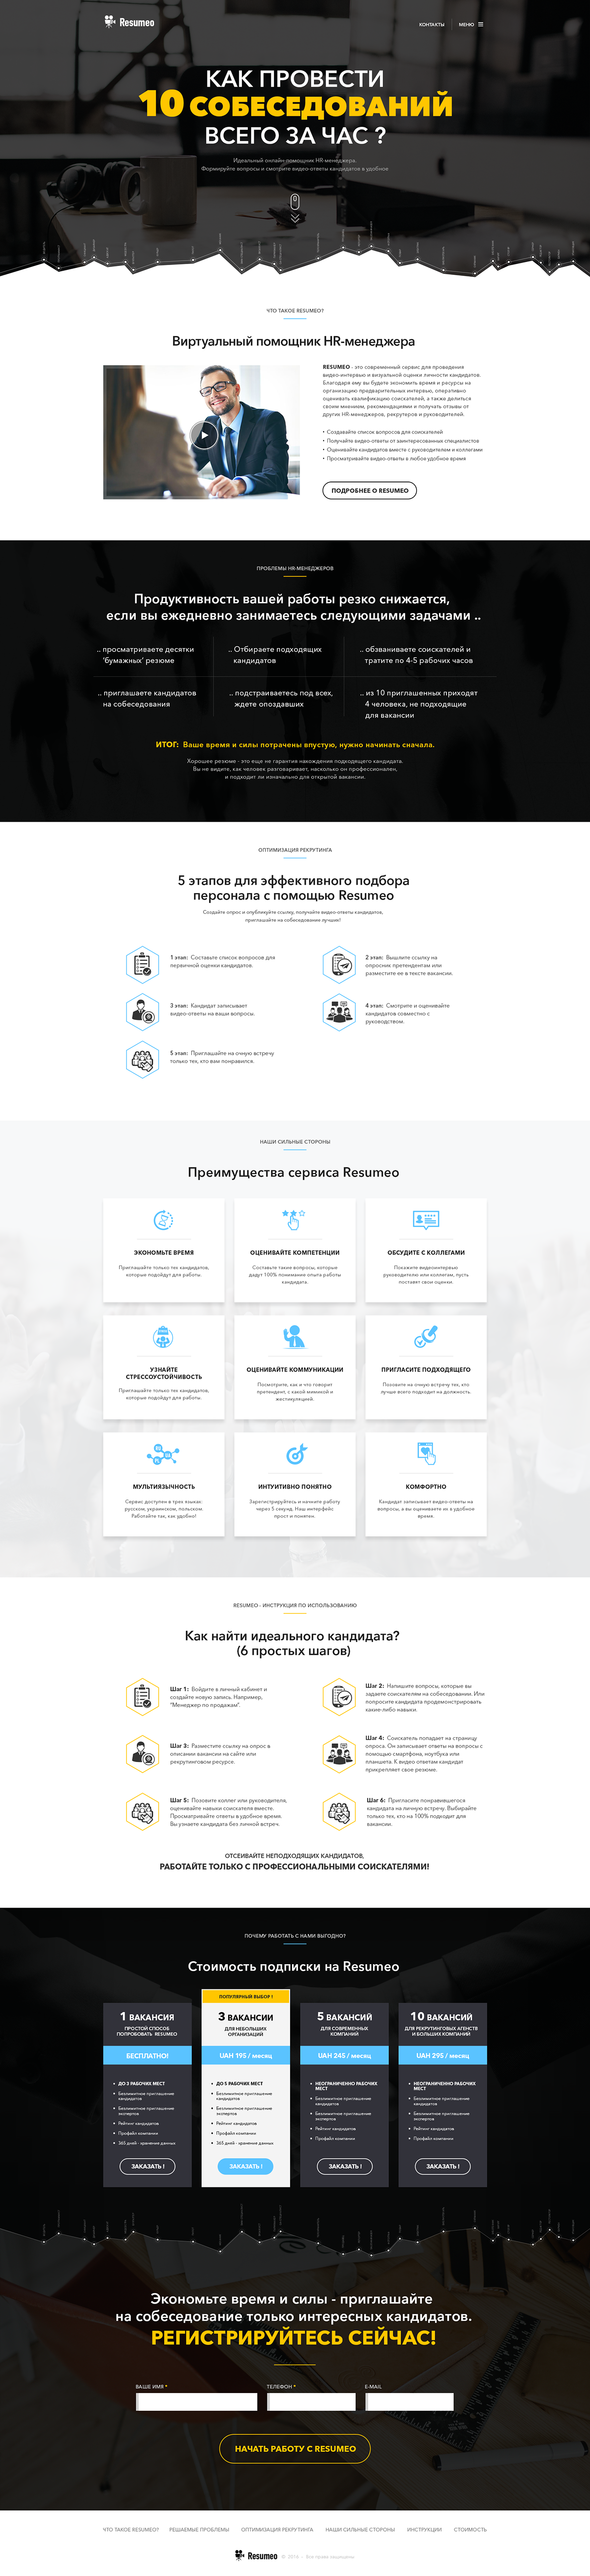 resumeo online video interview services on behance thank you